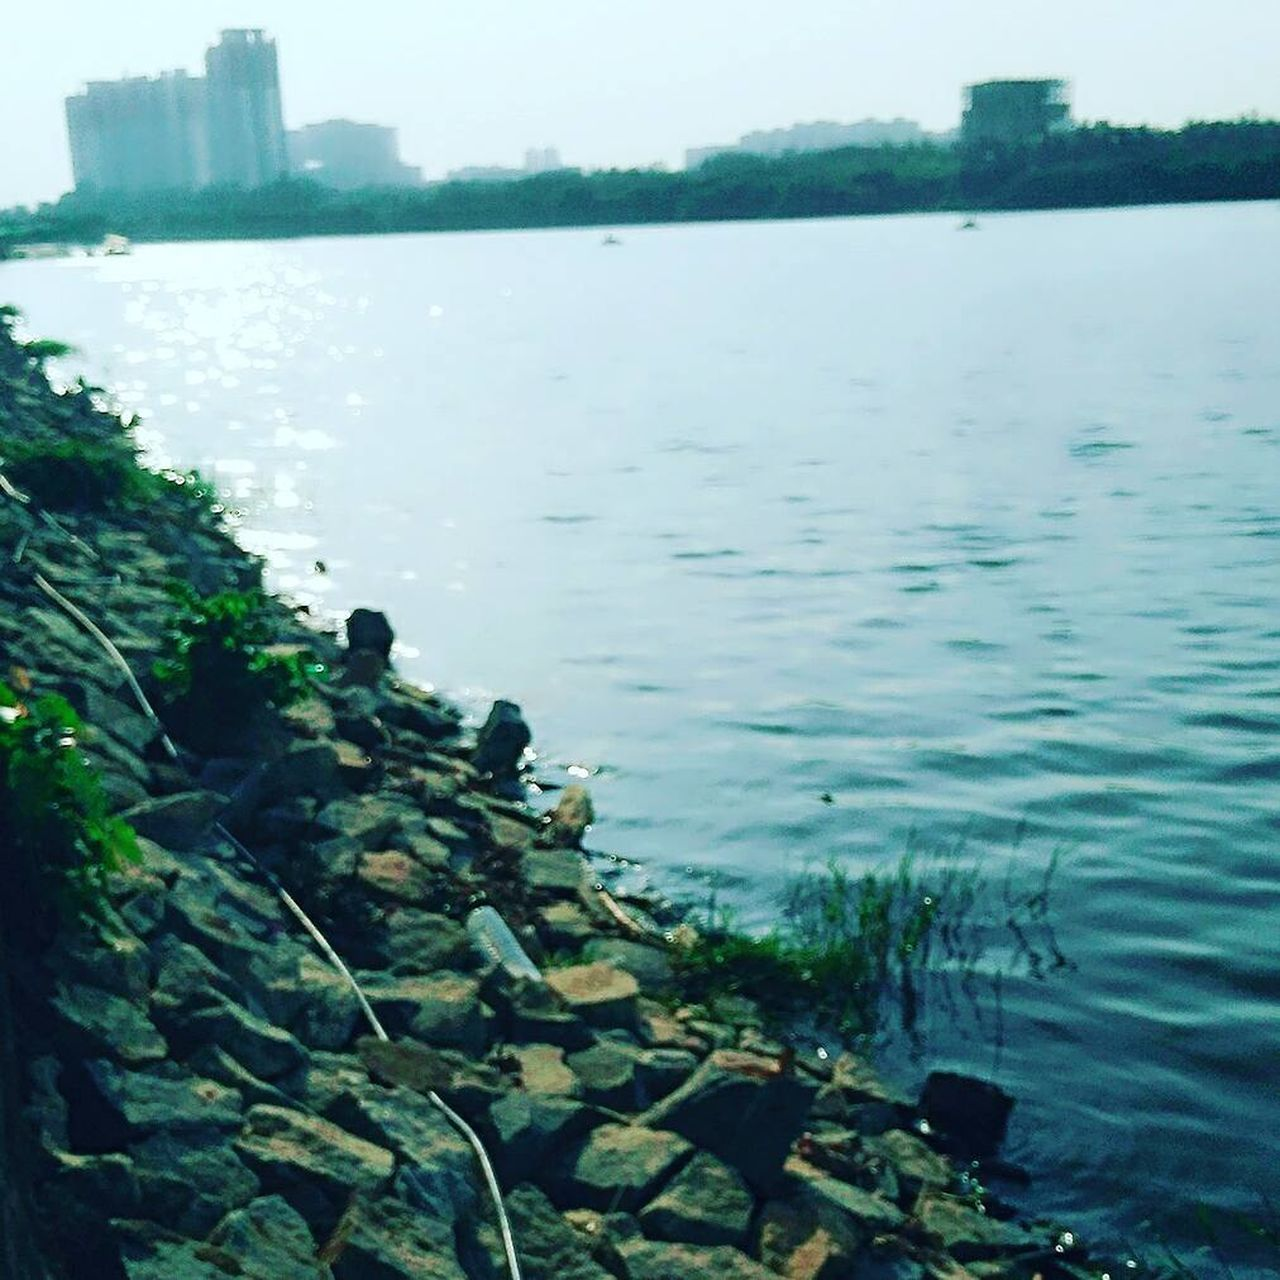 Stones Waves Water Nature Outdoors Cityscape Beauty In Nature Gem Travel Destinations Beauty Of The Silence